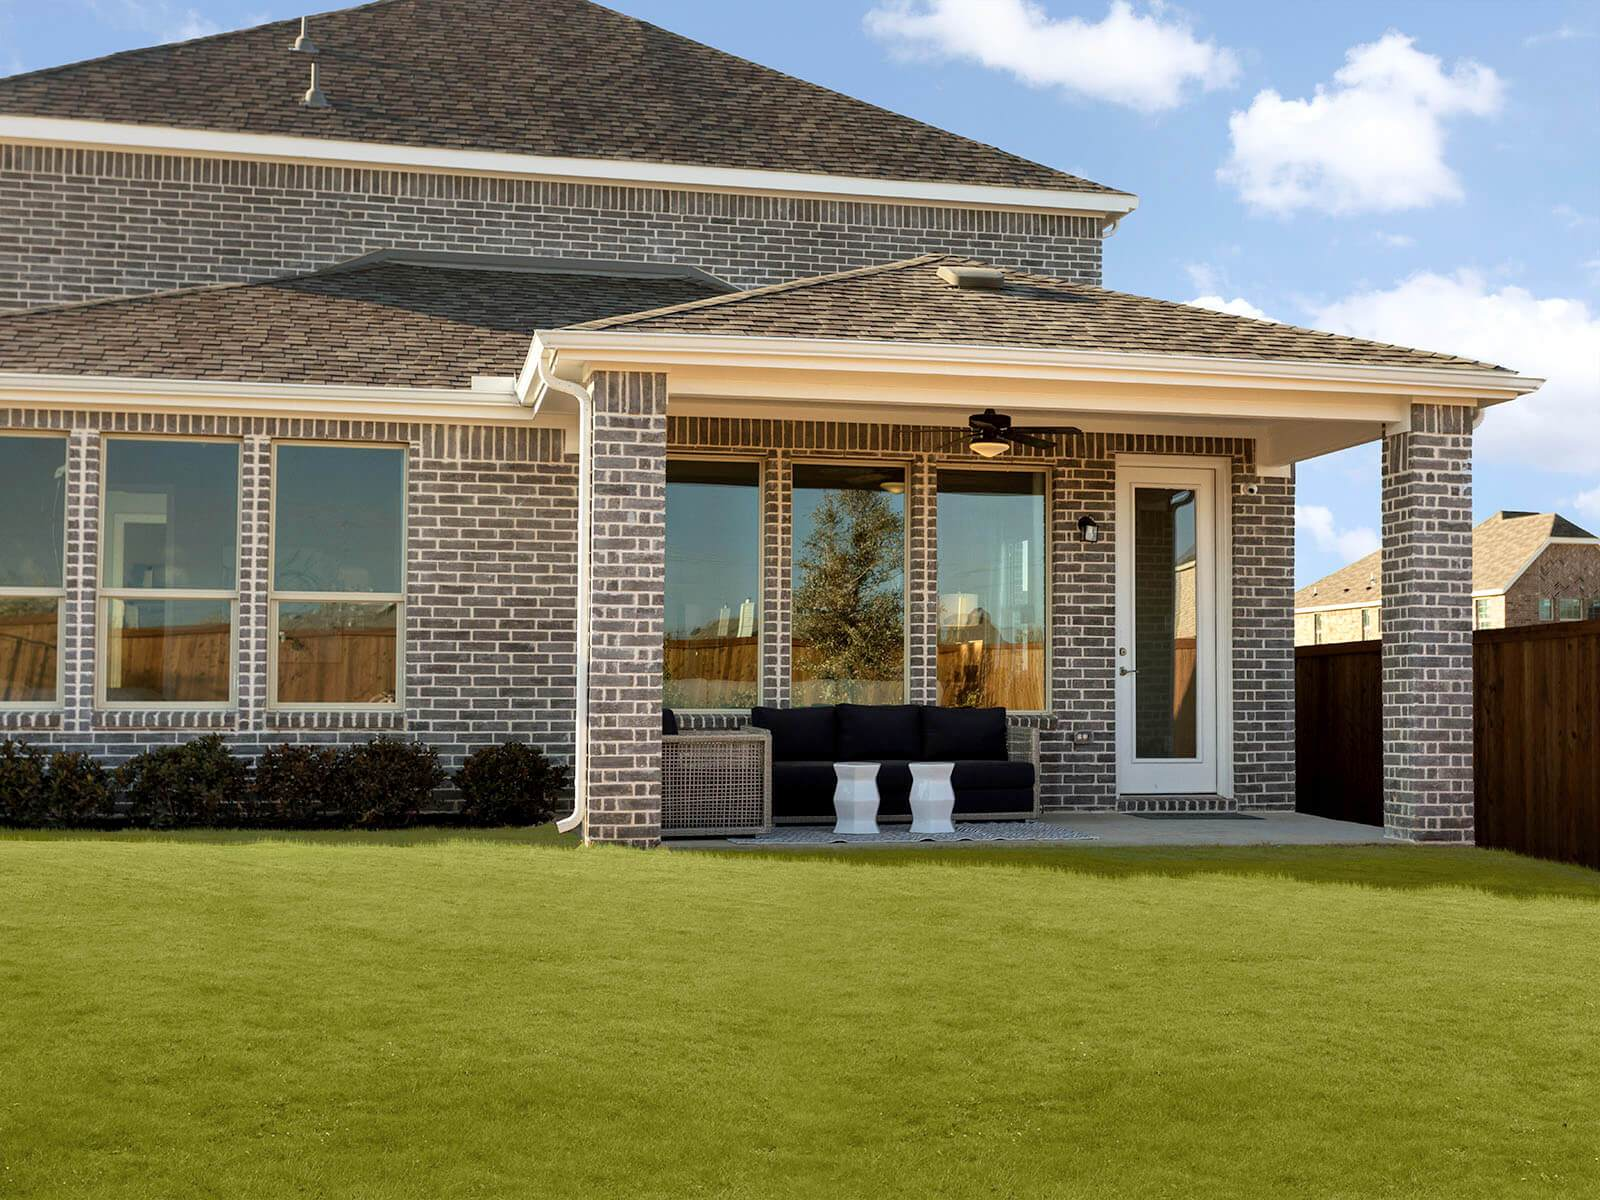 'Ranch Park Village - Texana Series' by Meritage Homes: Dallas/Ft. ... in Dallas